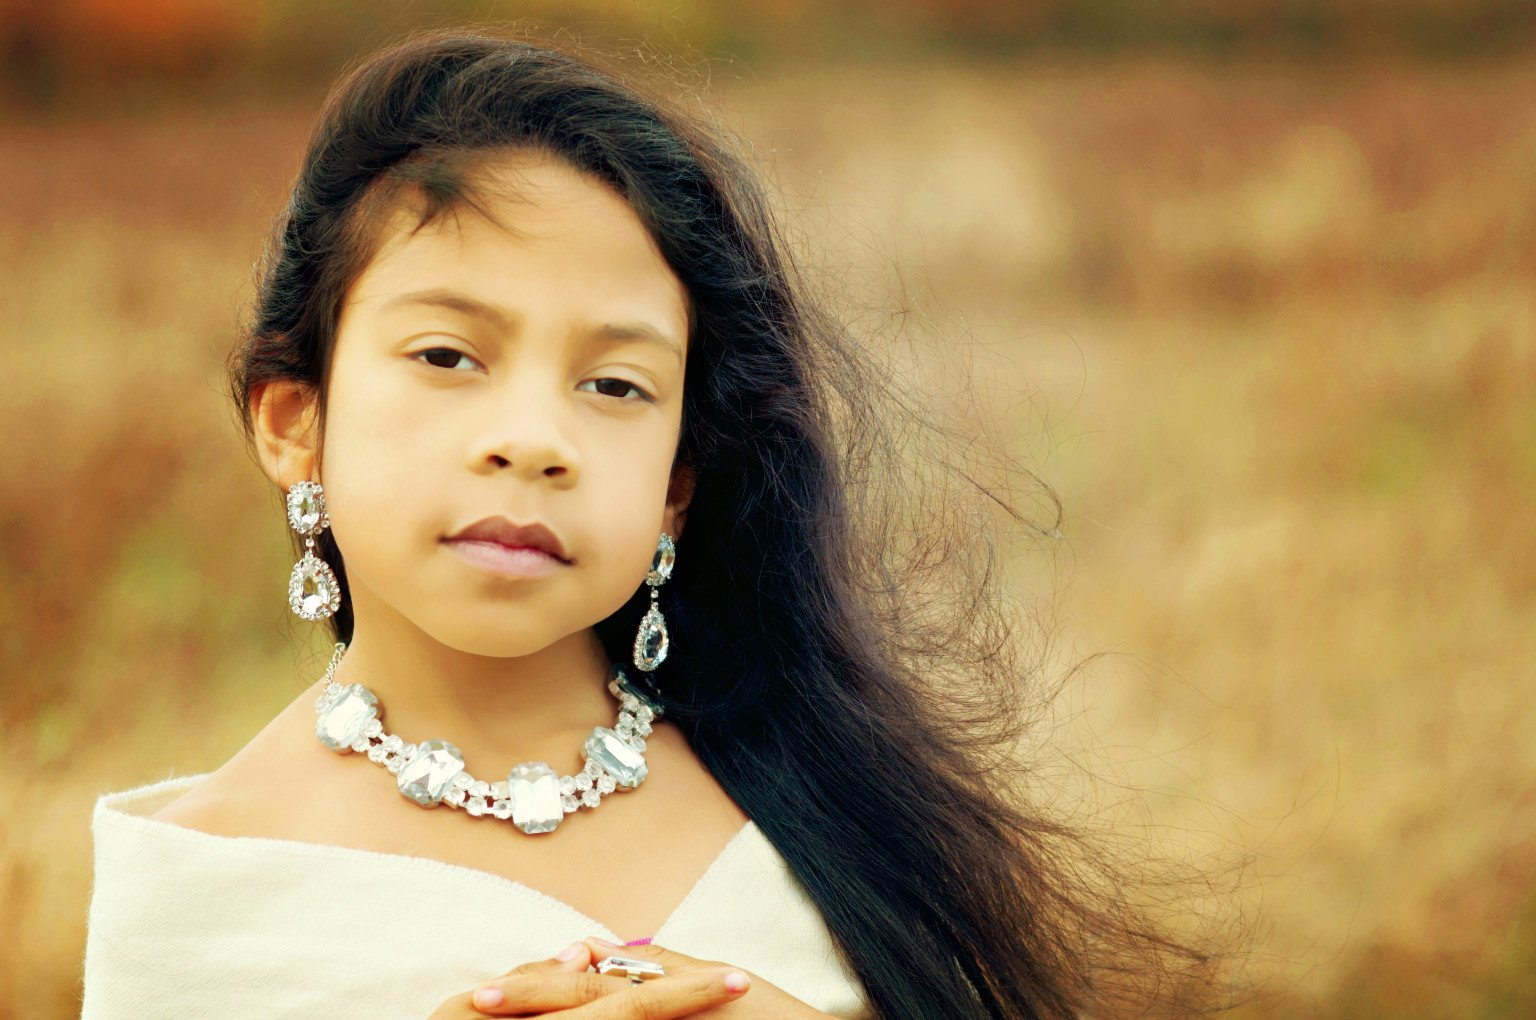 Free The Fringe 6 Ways To De Stereotype Native American